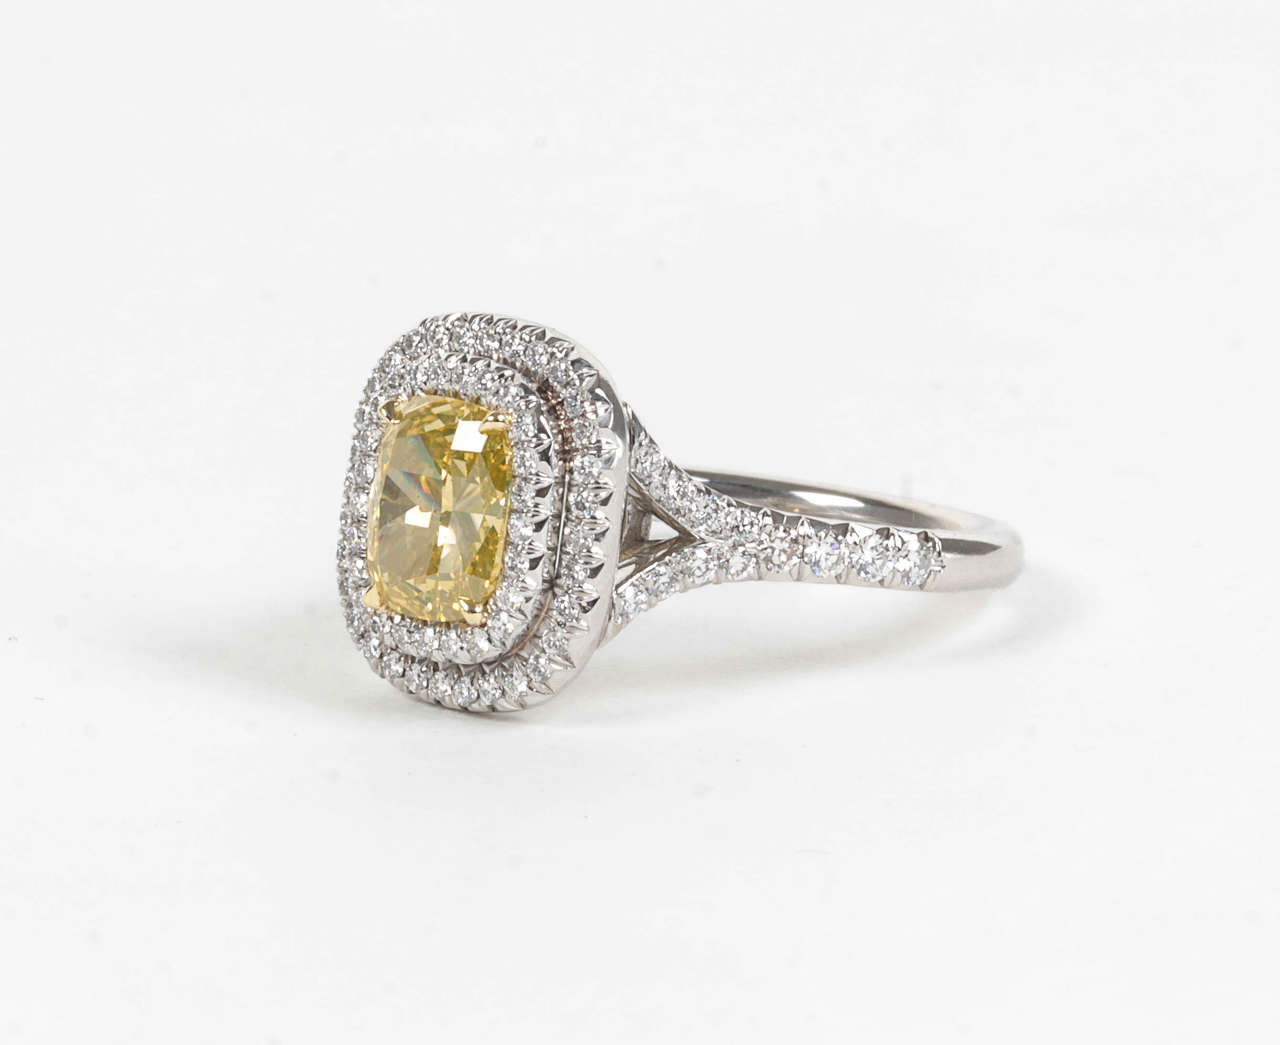 1.54 carat GIA Certified vivid yellow VS2 cushion cut center diamond.  The center diamond is set in a handmade platinum and diamond mounting featuring 0.80 carats of round brilliant cut white diamonds.  A beautiful engagement or cocktail ring to